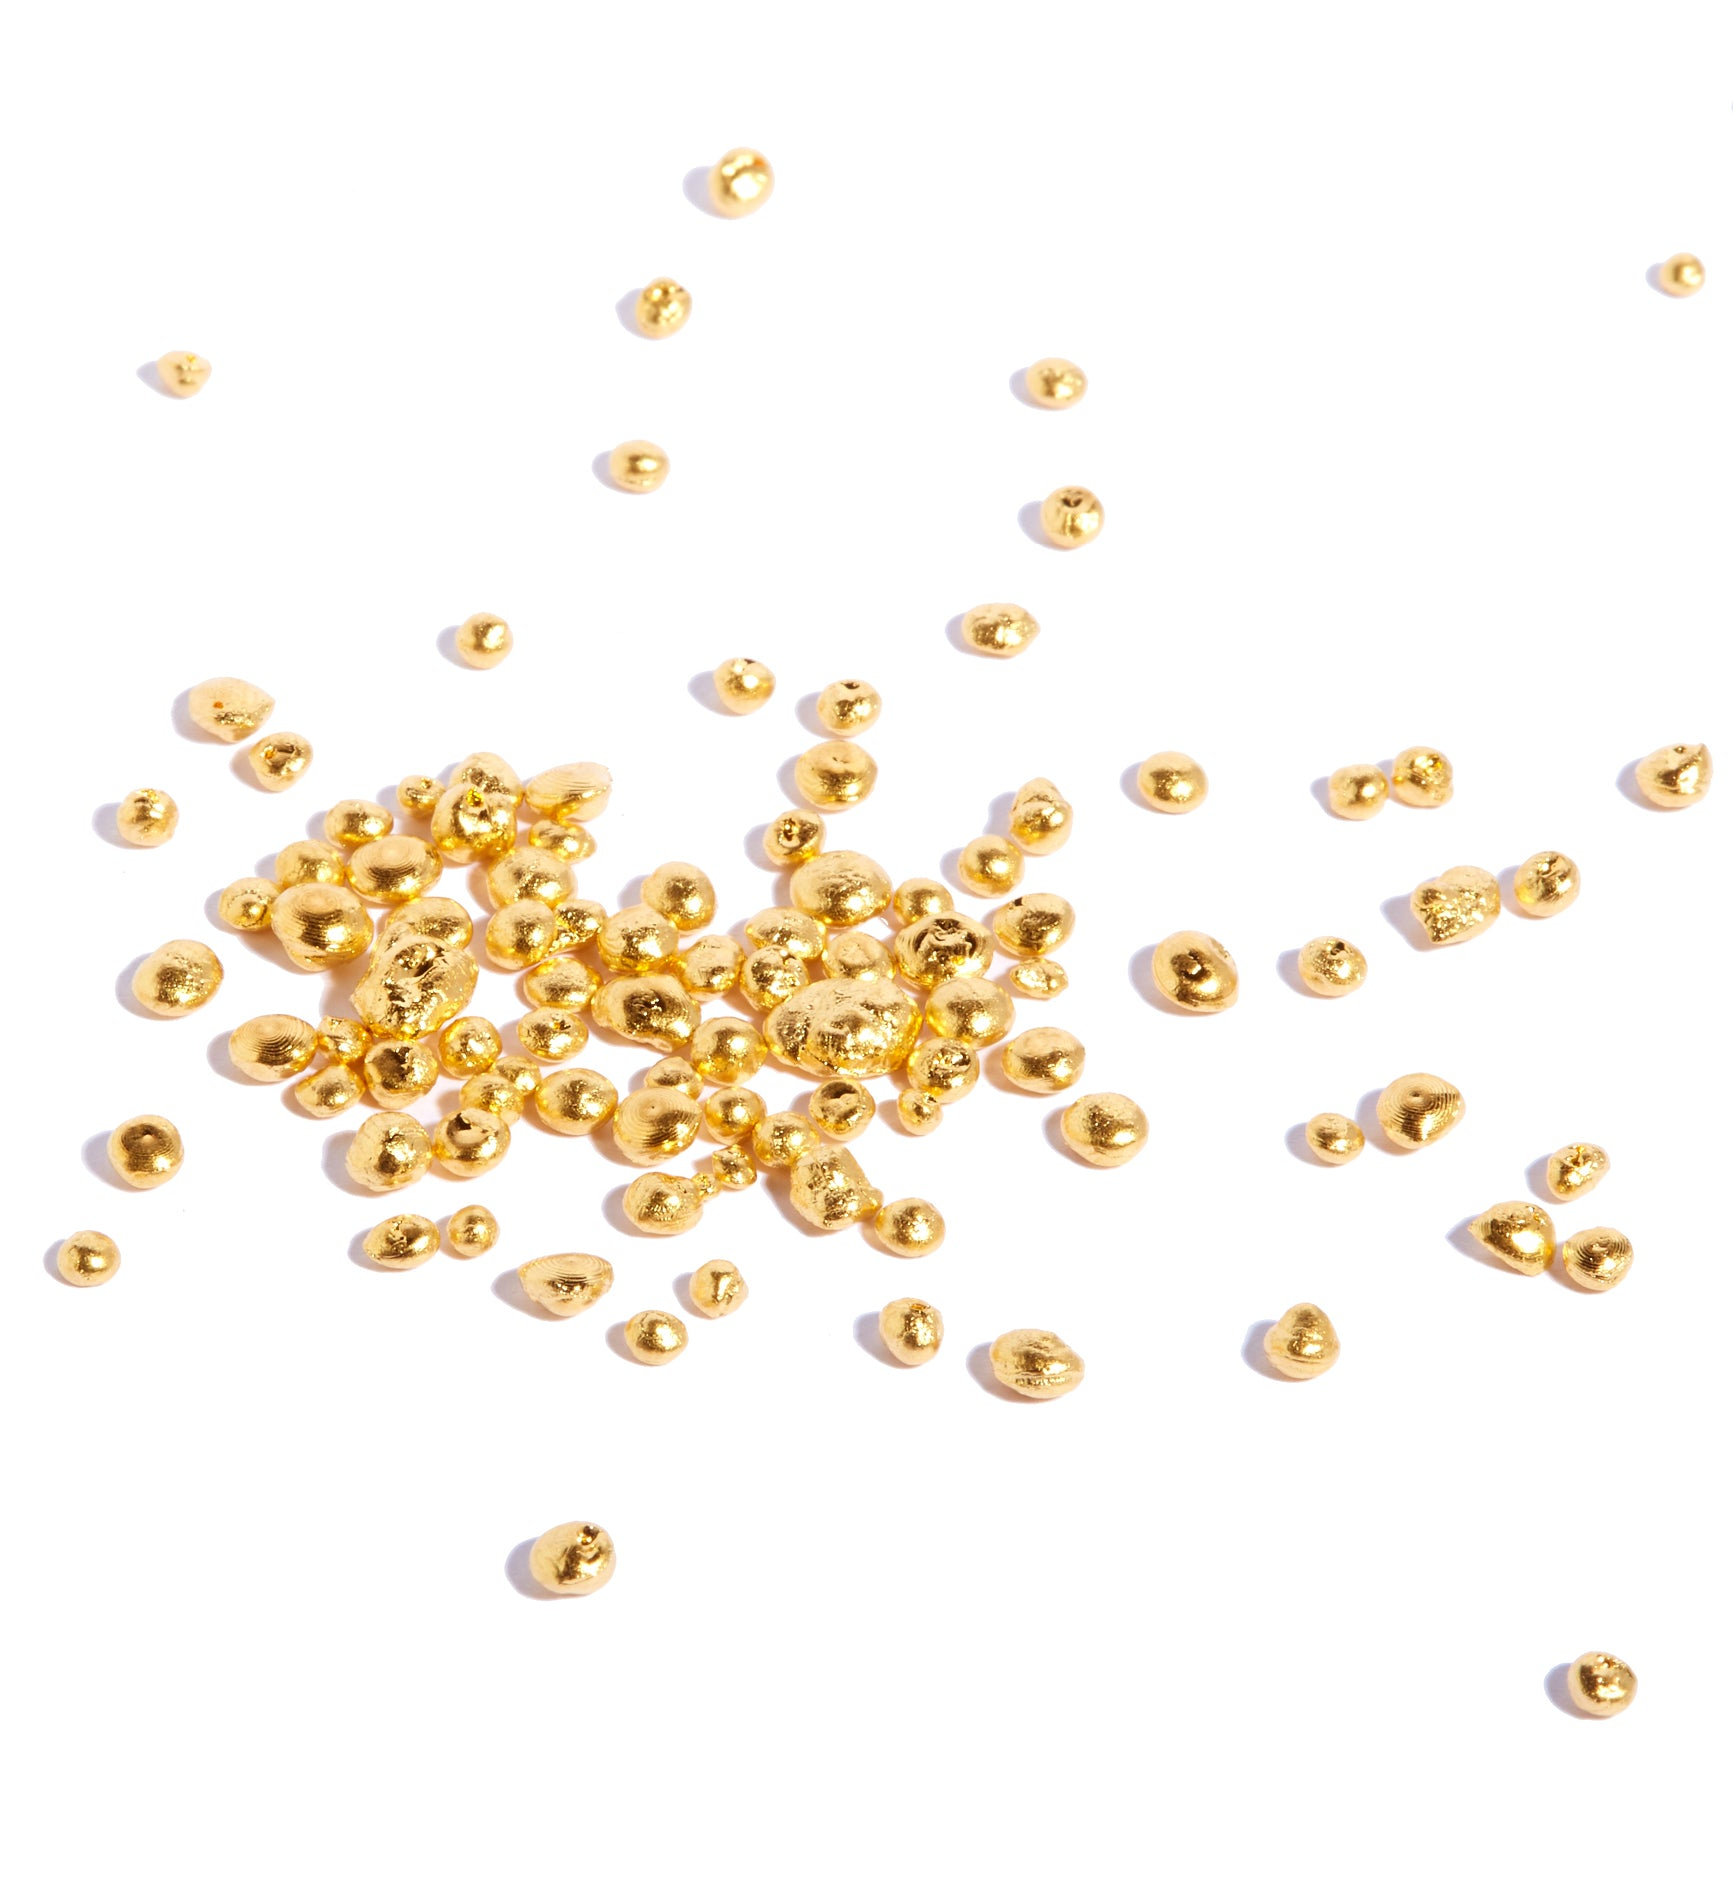 https://cdn.shopify.com/s/files/1/0571/9261/t/15/assets/gold%20granules-1509592606196.jpg?10810126362785615630